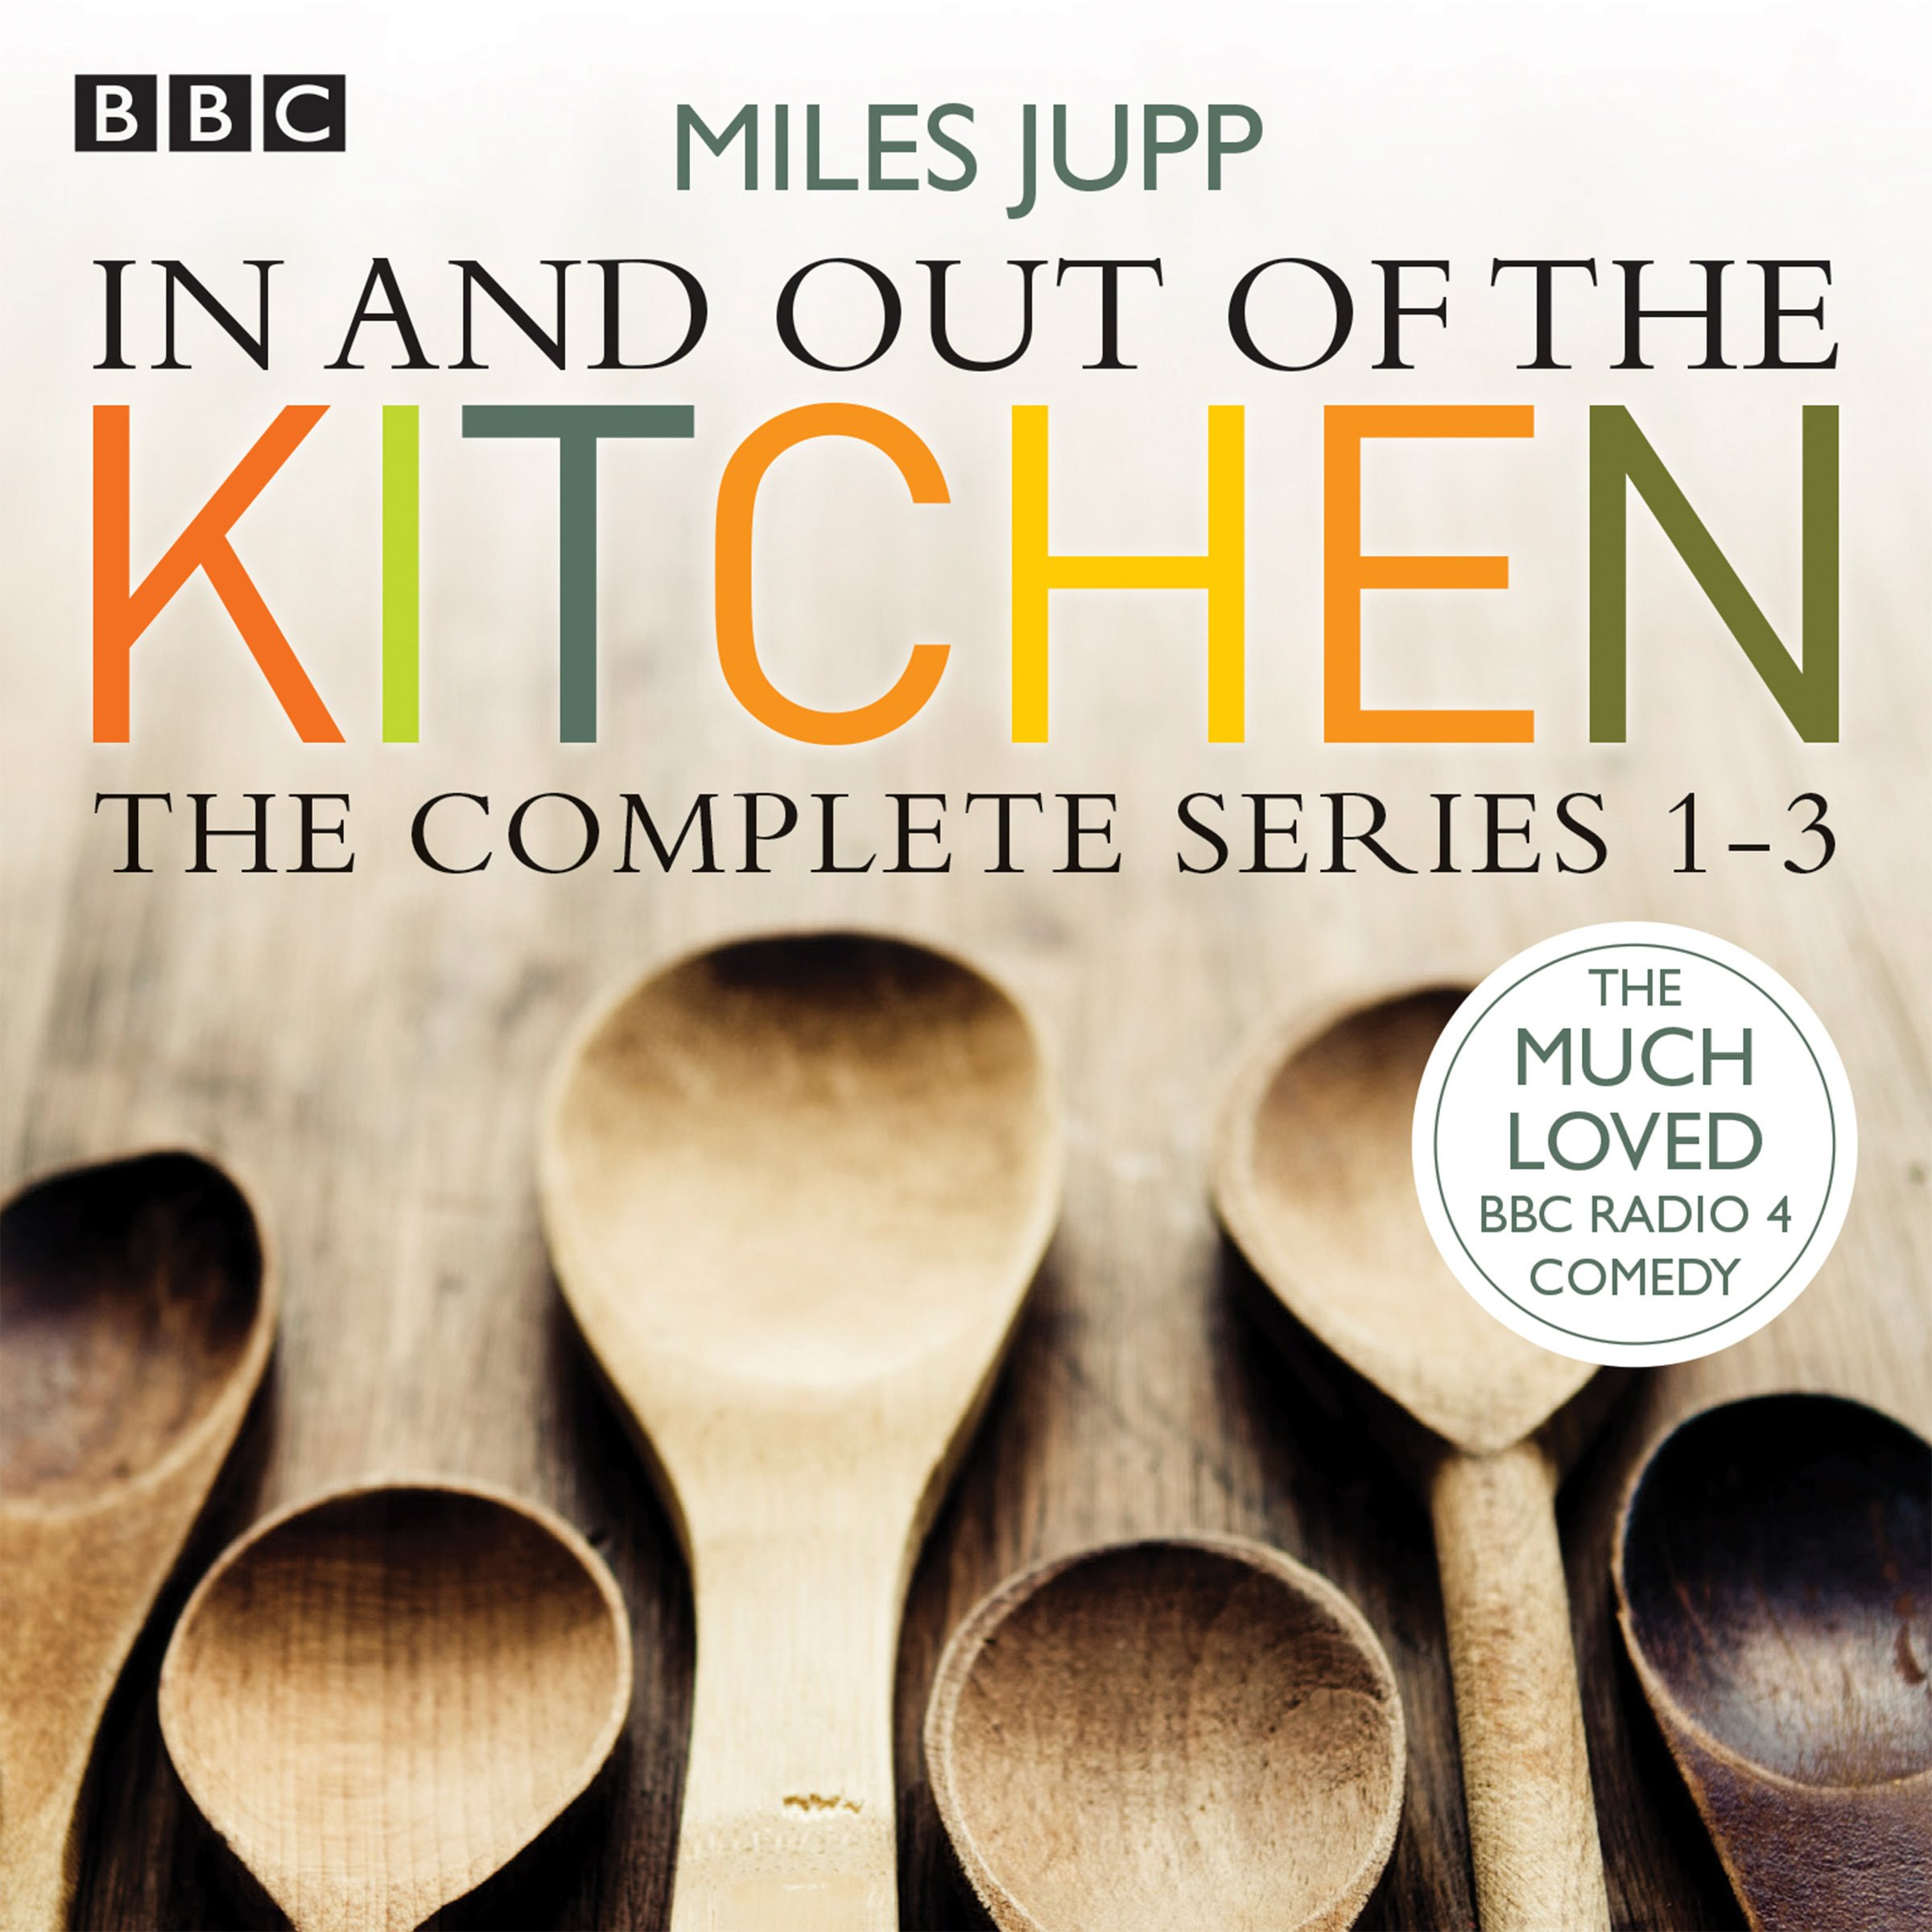 In and Out of the Kitchen: The Complete Series 1-3: Amazon.co.uk: Miles  Jupp, Full Cast, Justin Edwards: 9781910281062: Books